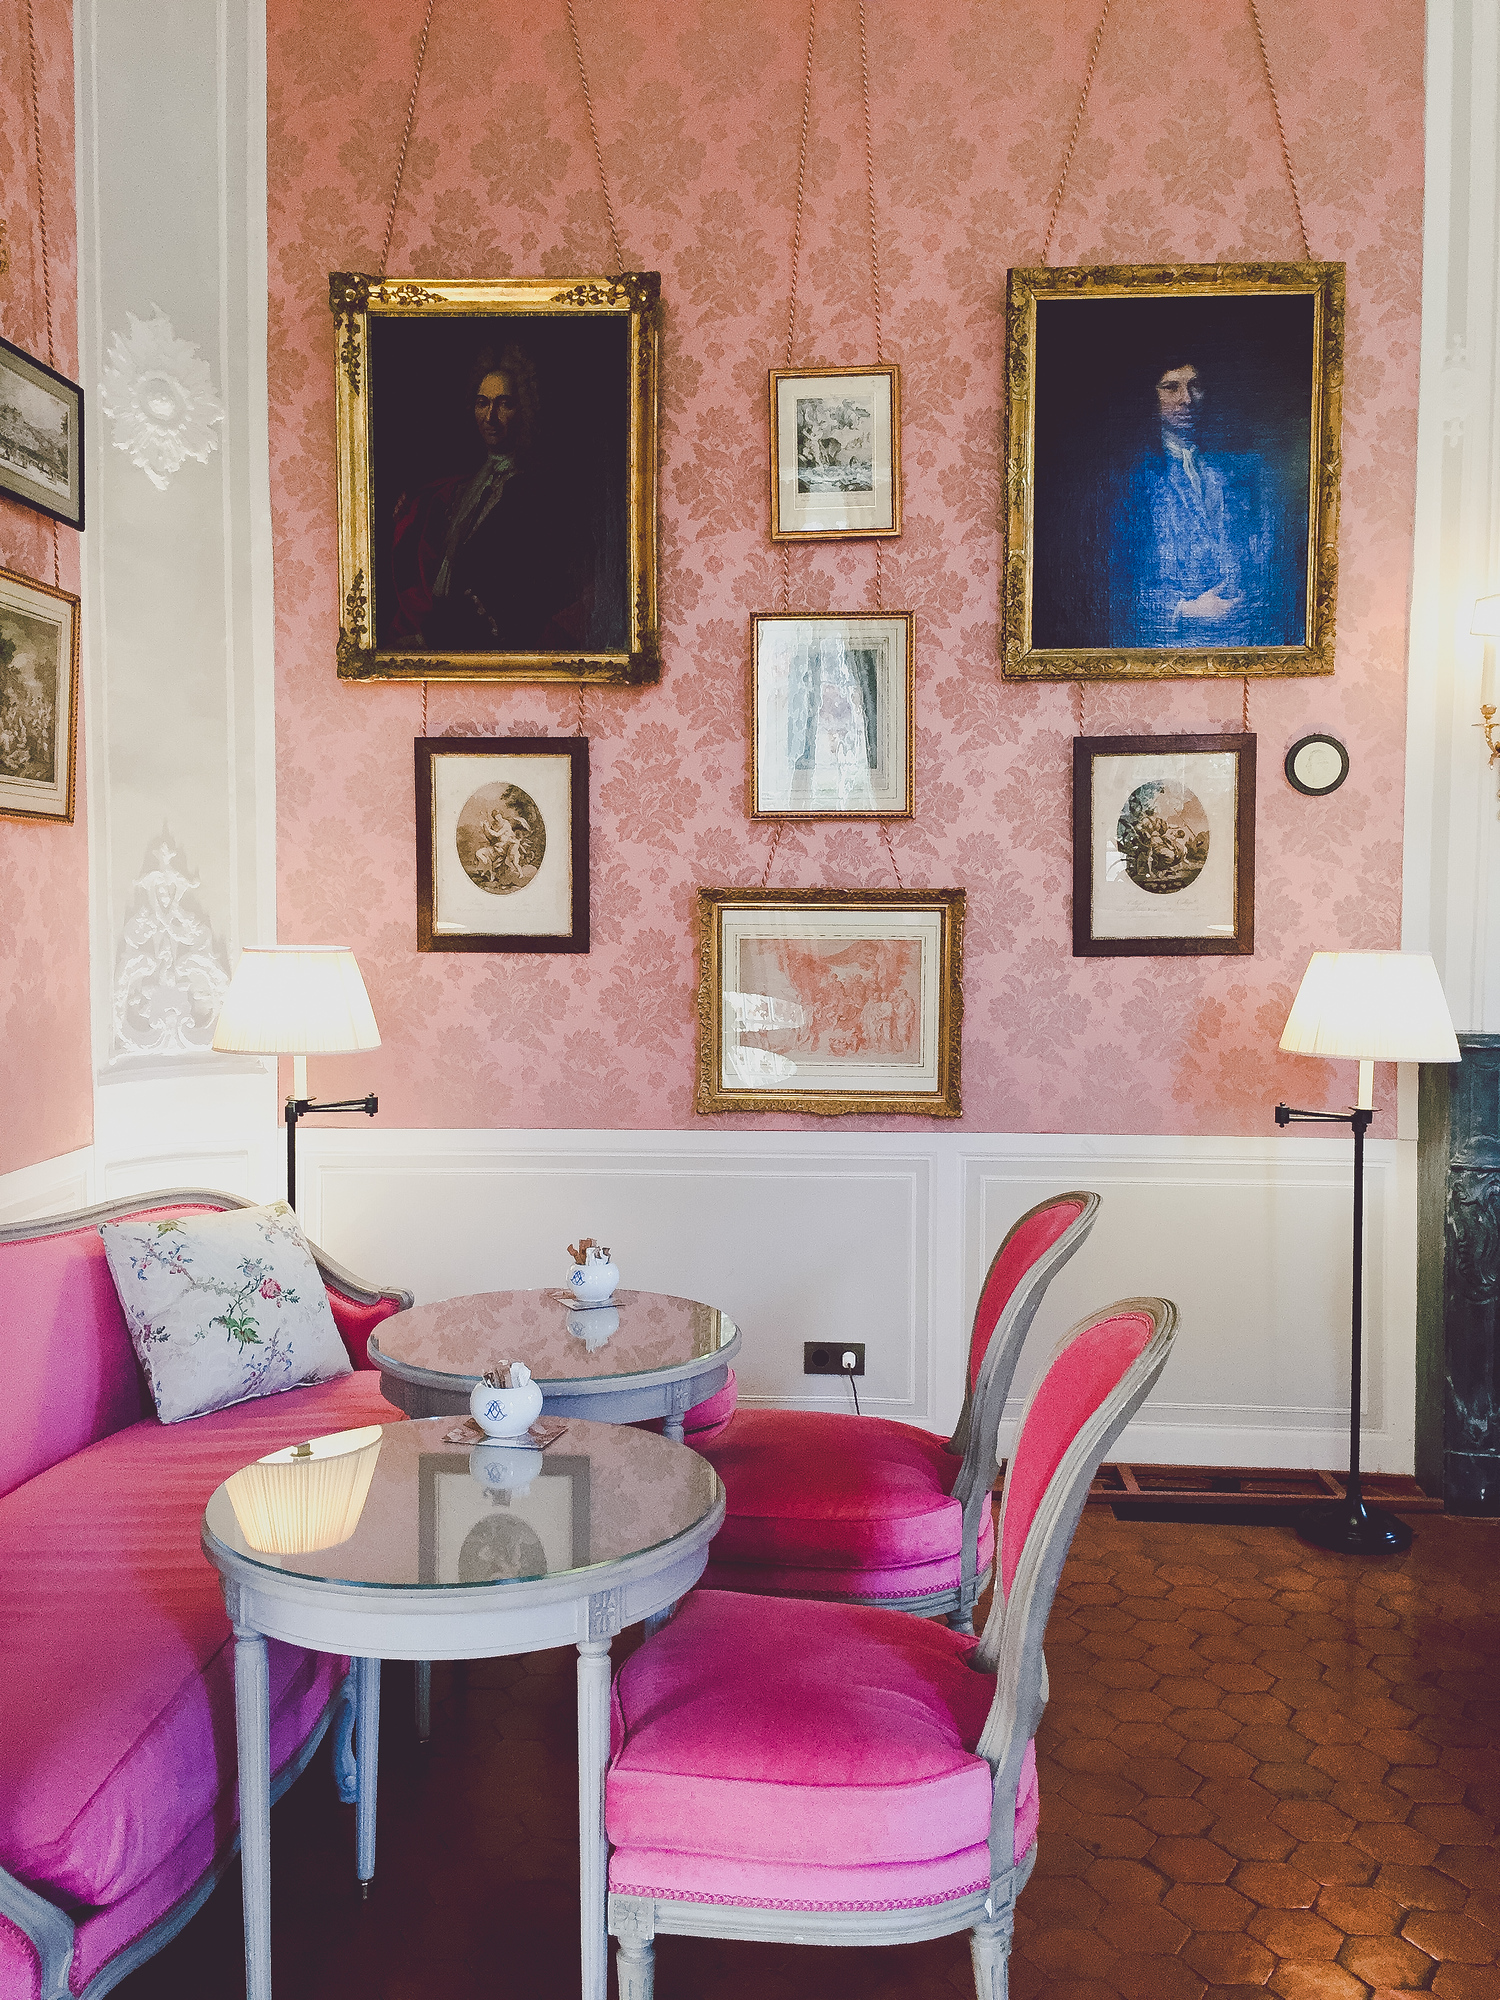 The salon at the Caumont Centre d'Art is one of the best places to eat. Check out our top locals' picks on where to eat in Aix en Provence and avoid the tourist traps.